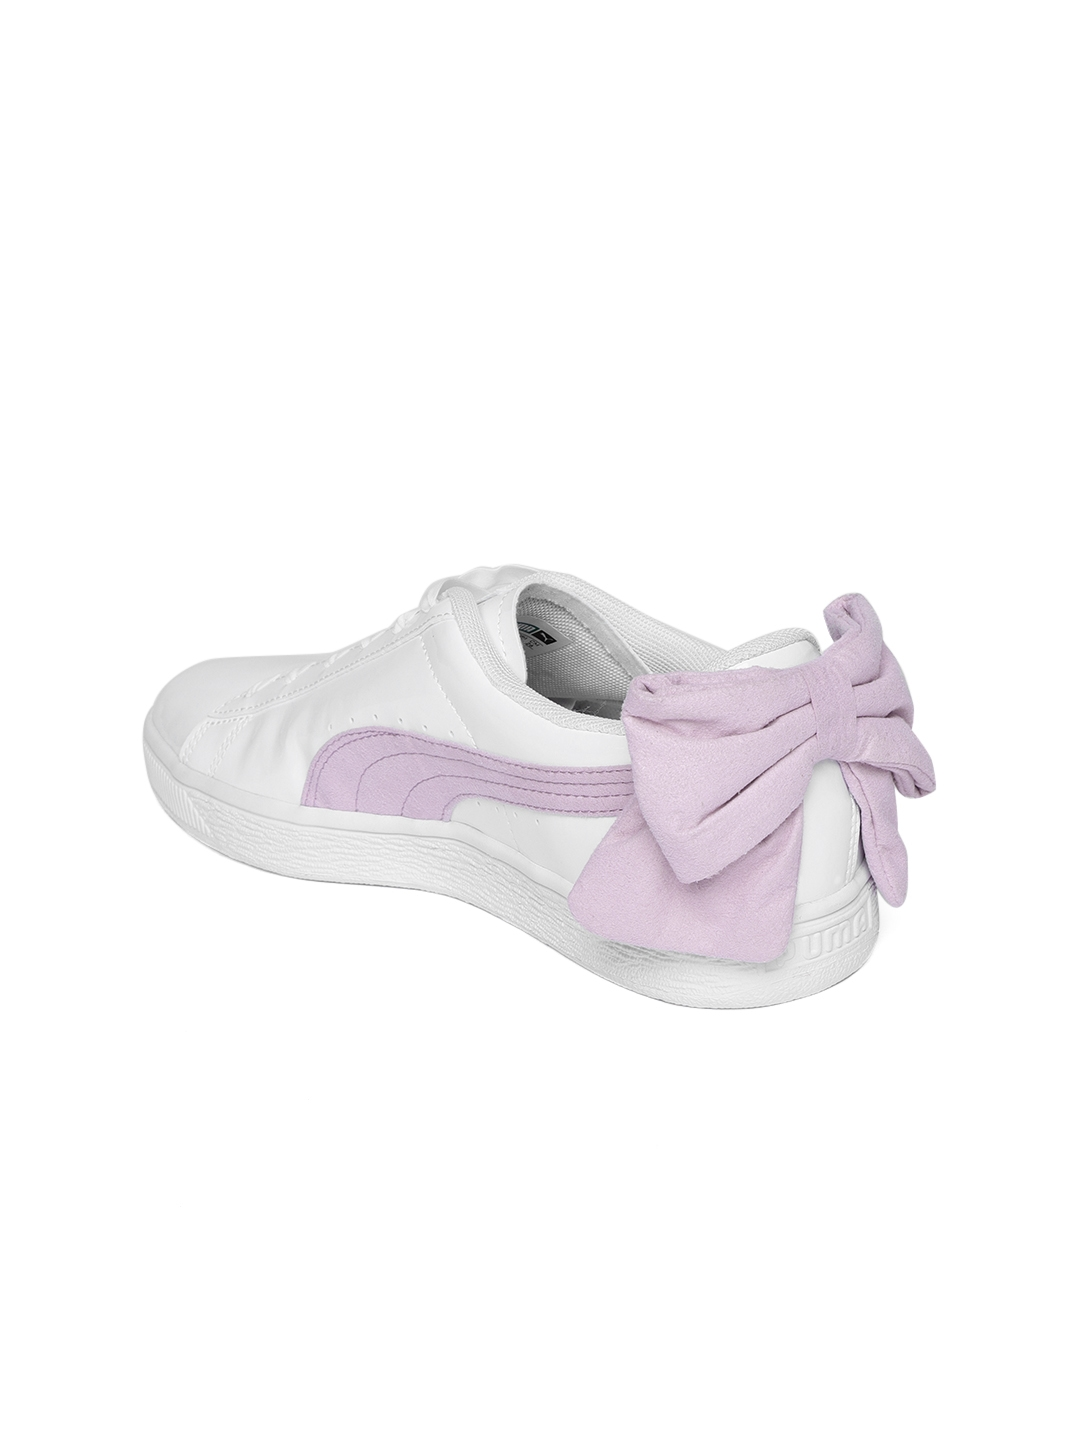 Buy Puma Women White   Lavender Leather Basket Bow SB Sneakers ... 510c4a37a